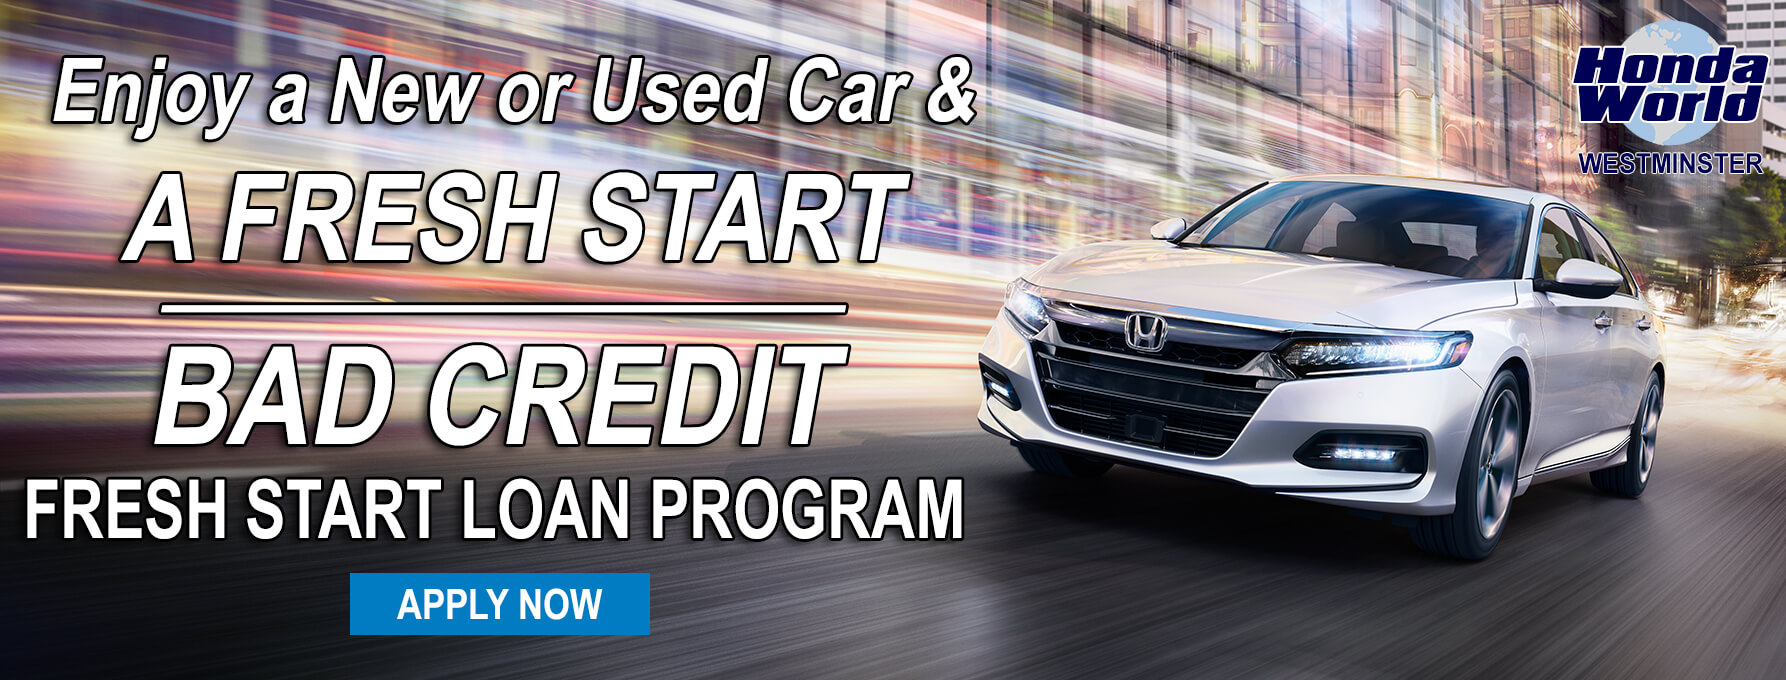 Car Dealer That Accept Bad Credit >> Bad Credit Car Loans Orange County Ca Westminster Auto Loans